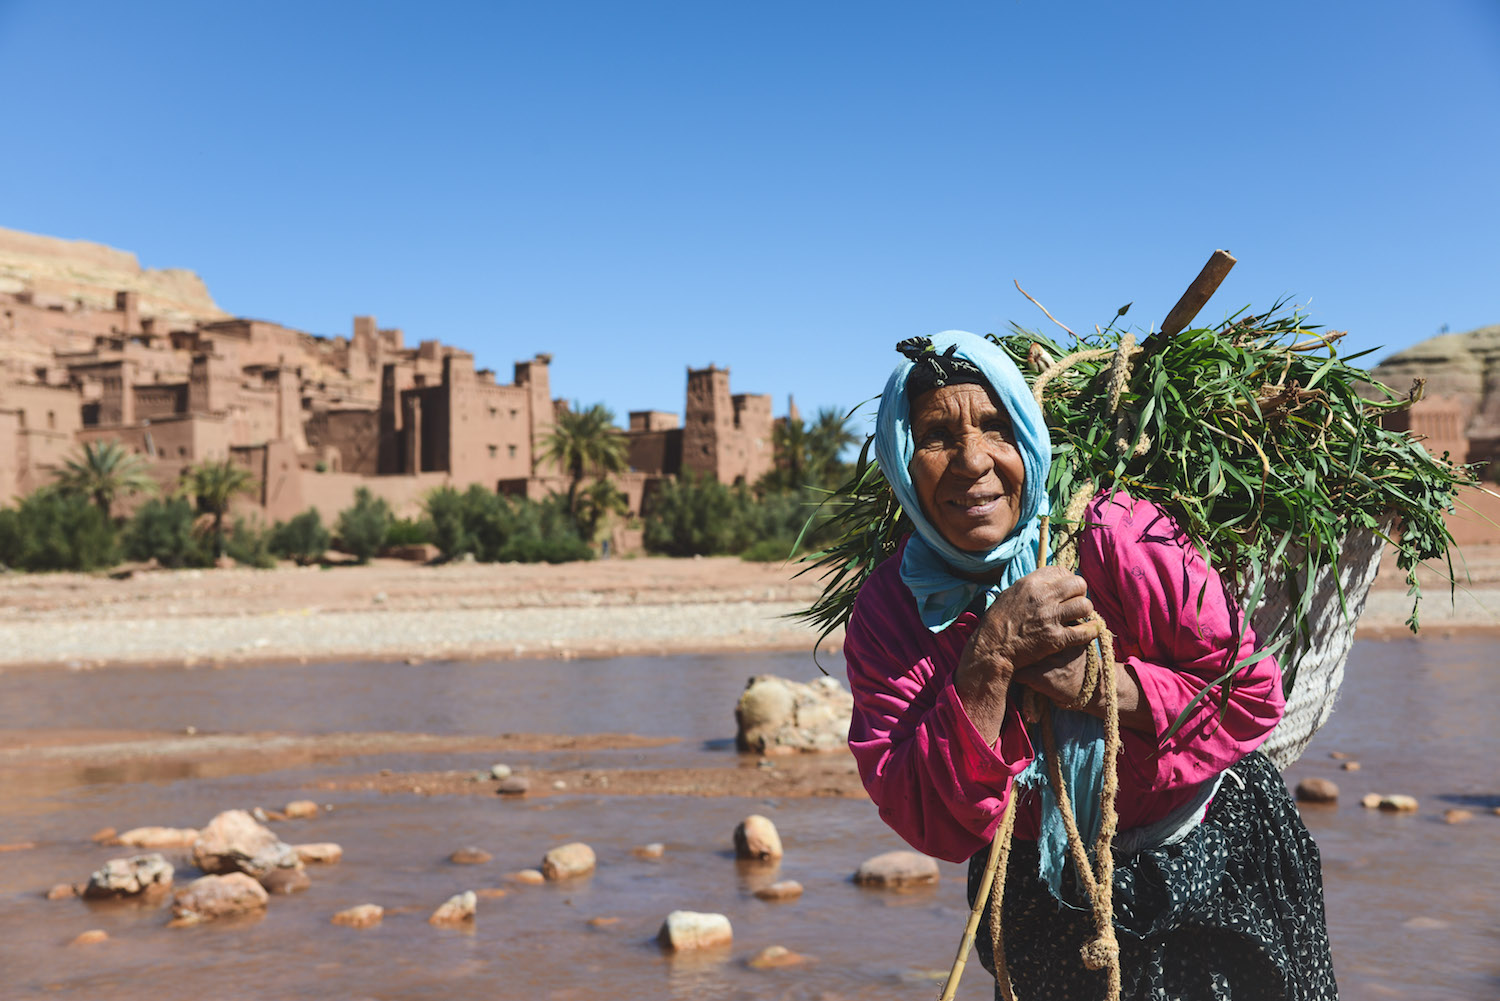 People_of_Morocco_3